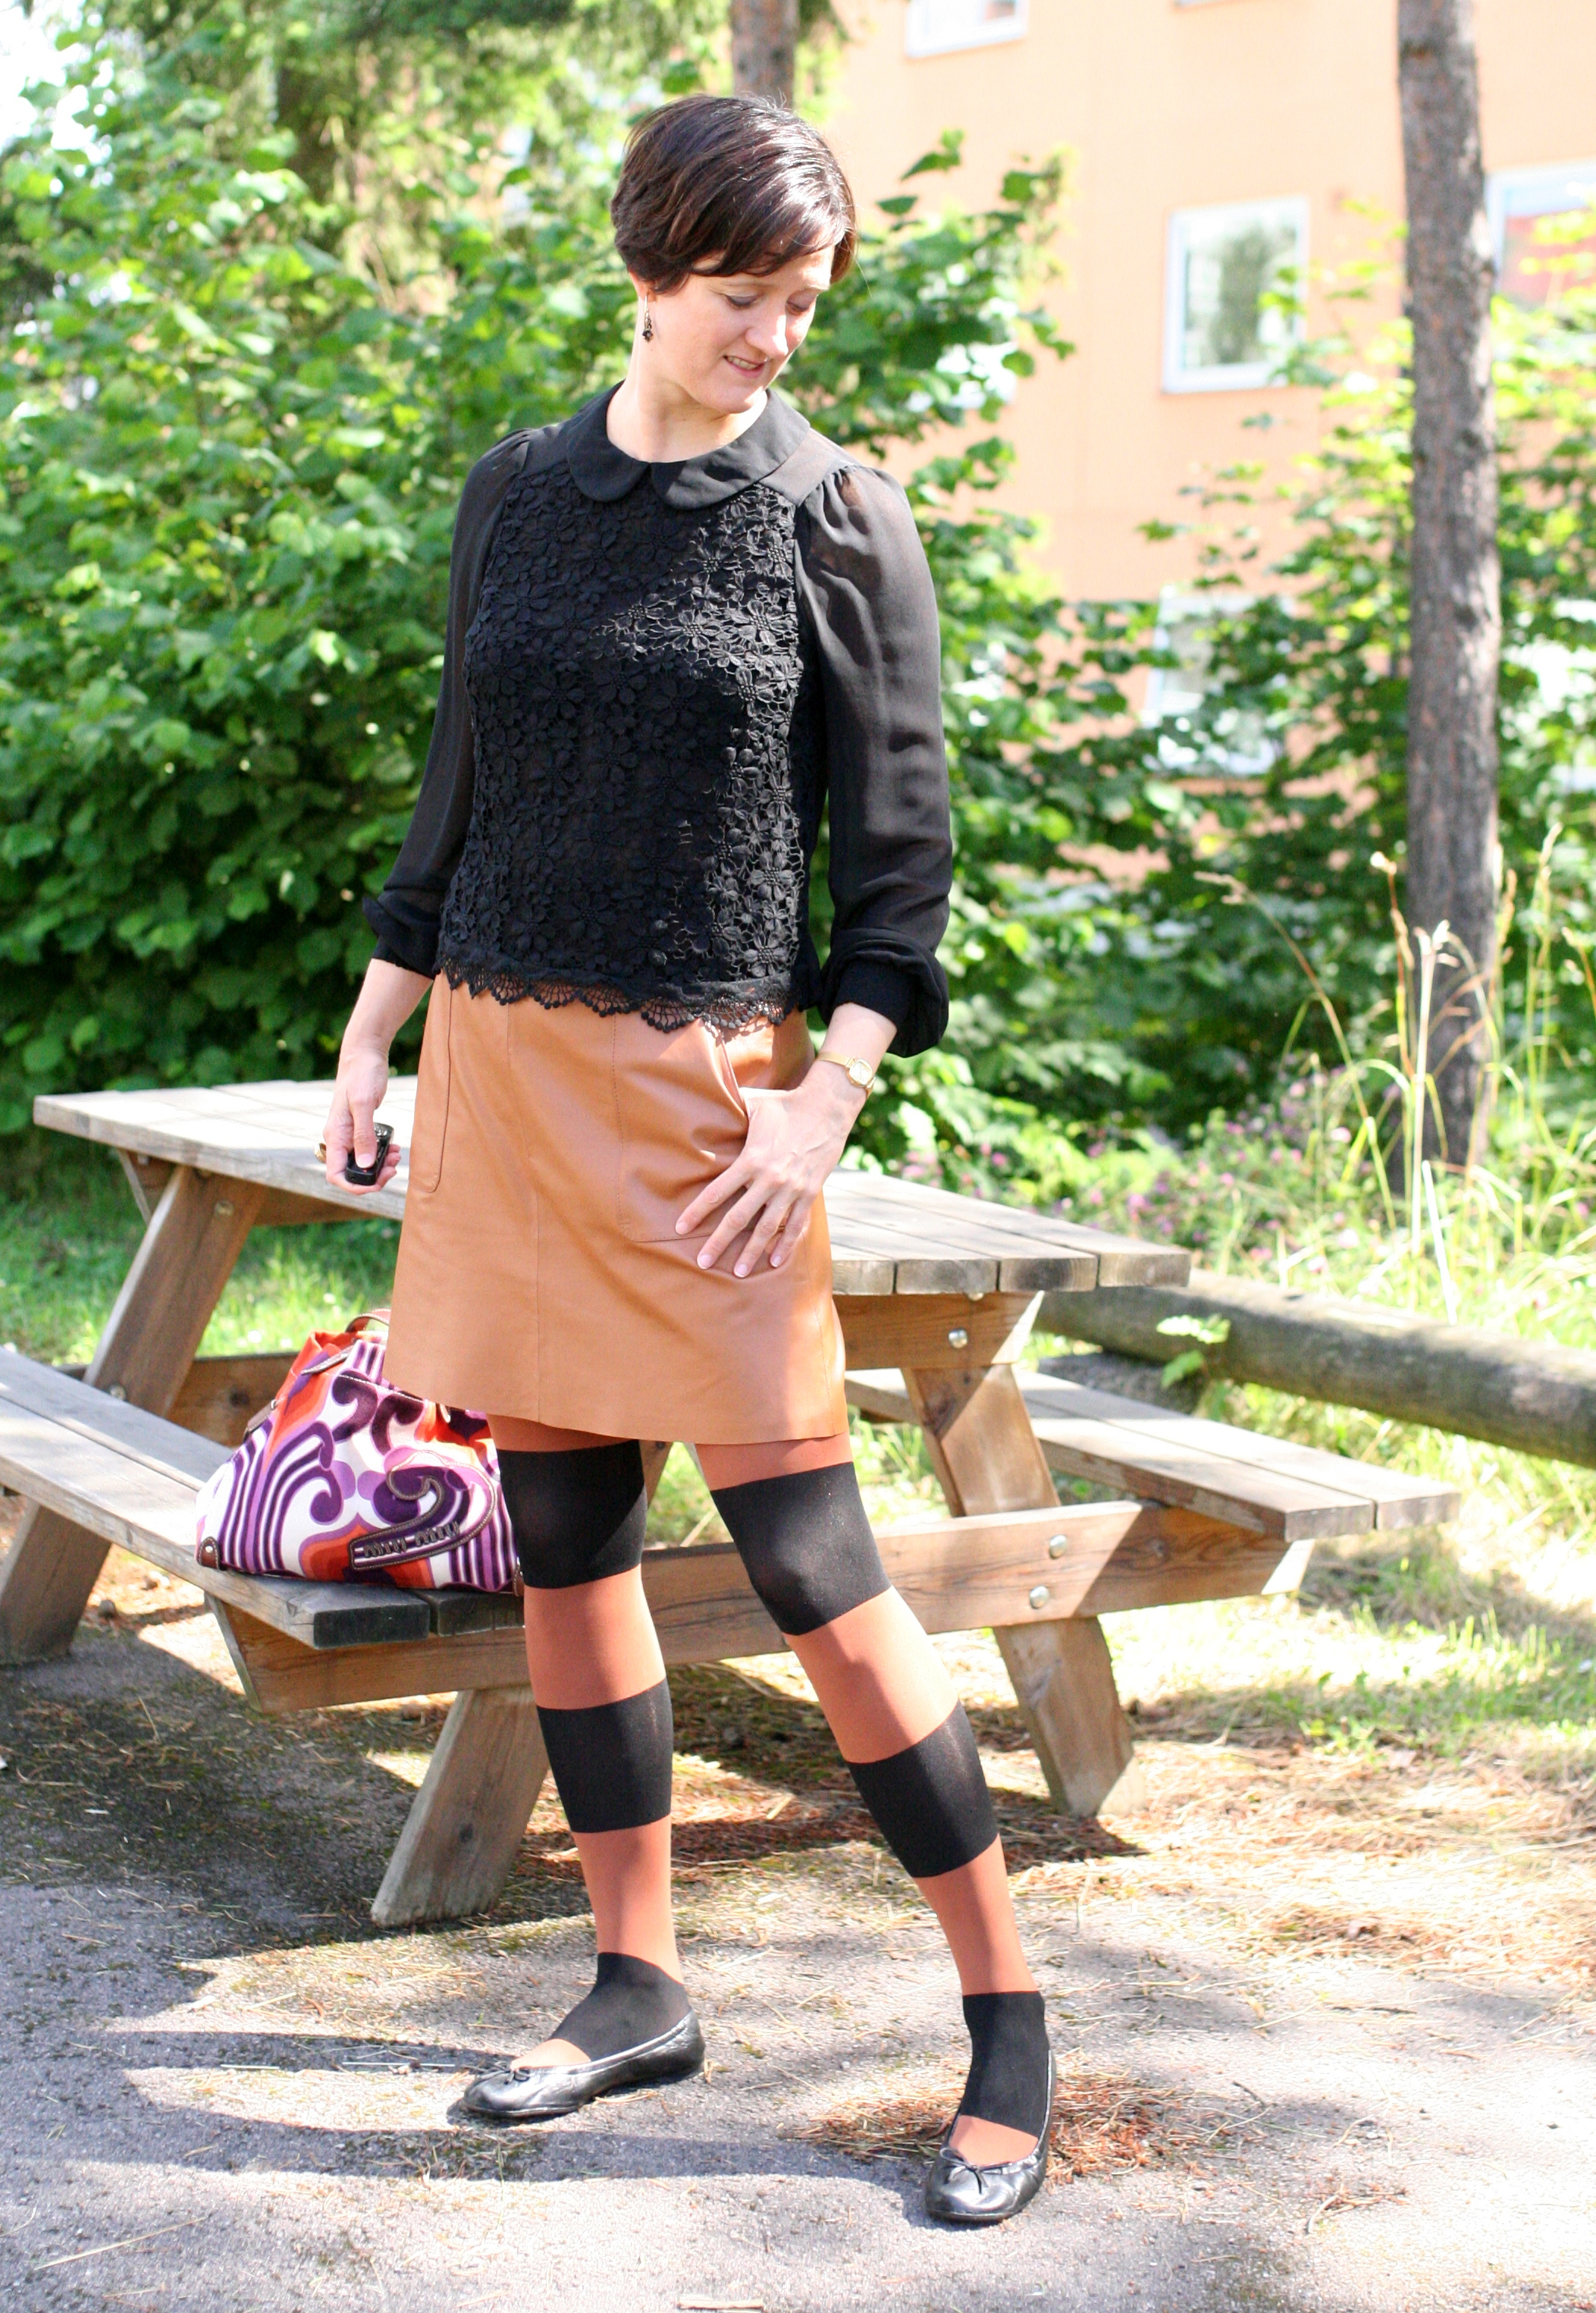 Tall Girl's Fashion // Black lace blouse and mustard leather skirt